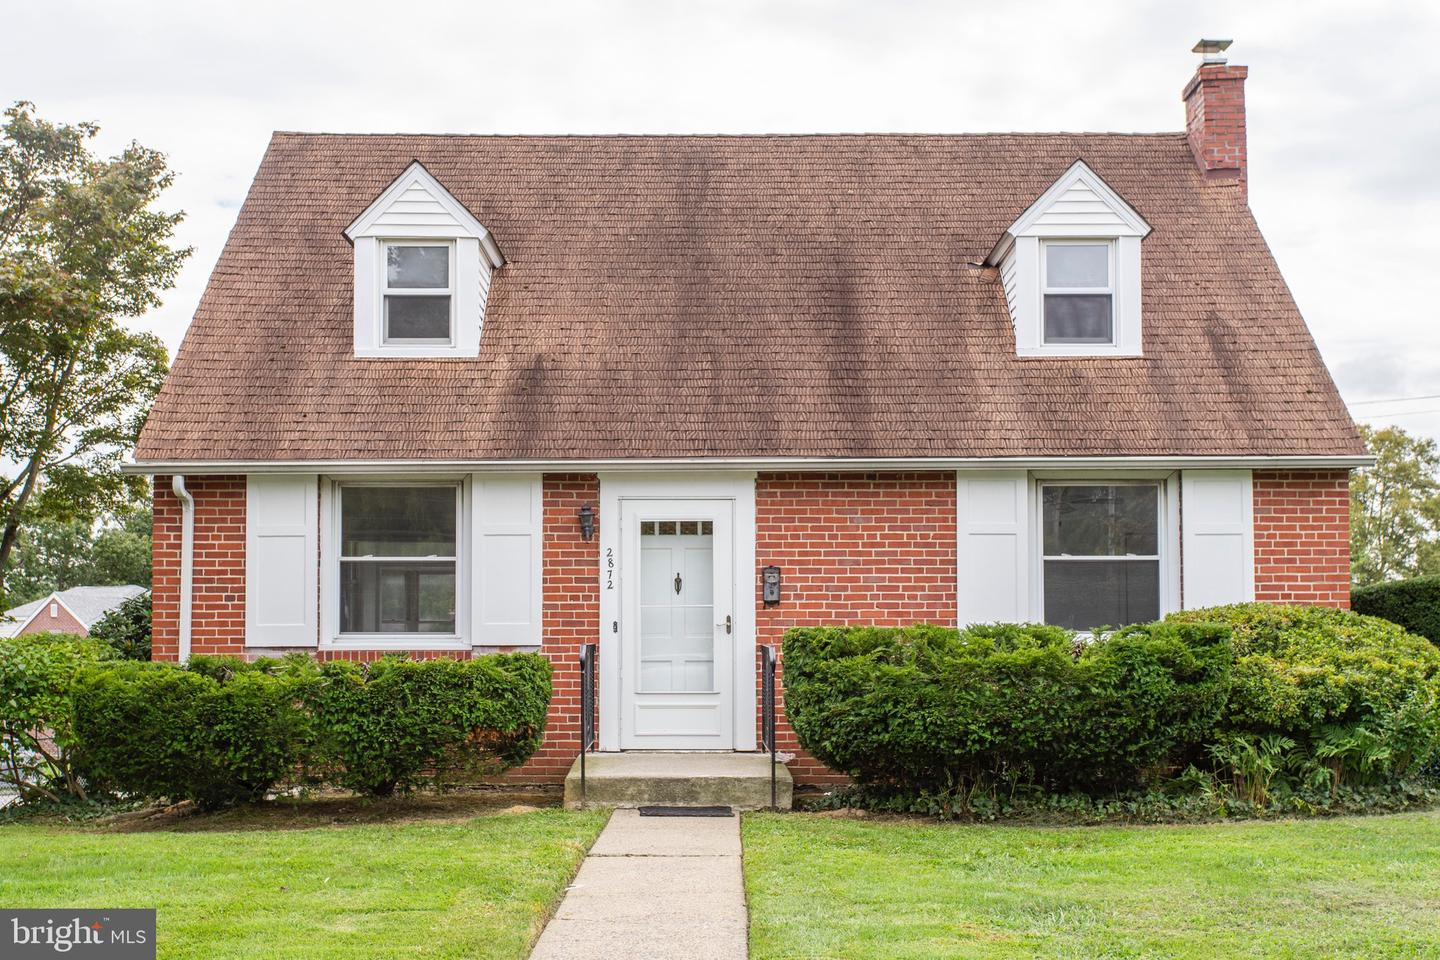 2872 West Chester Pike Broomall, PA 19008